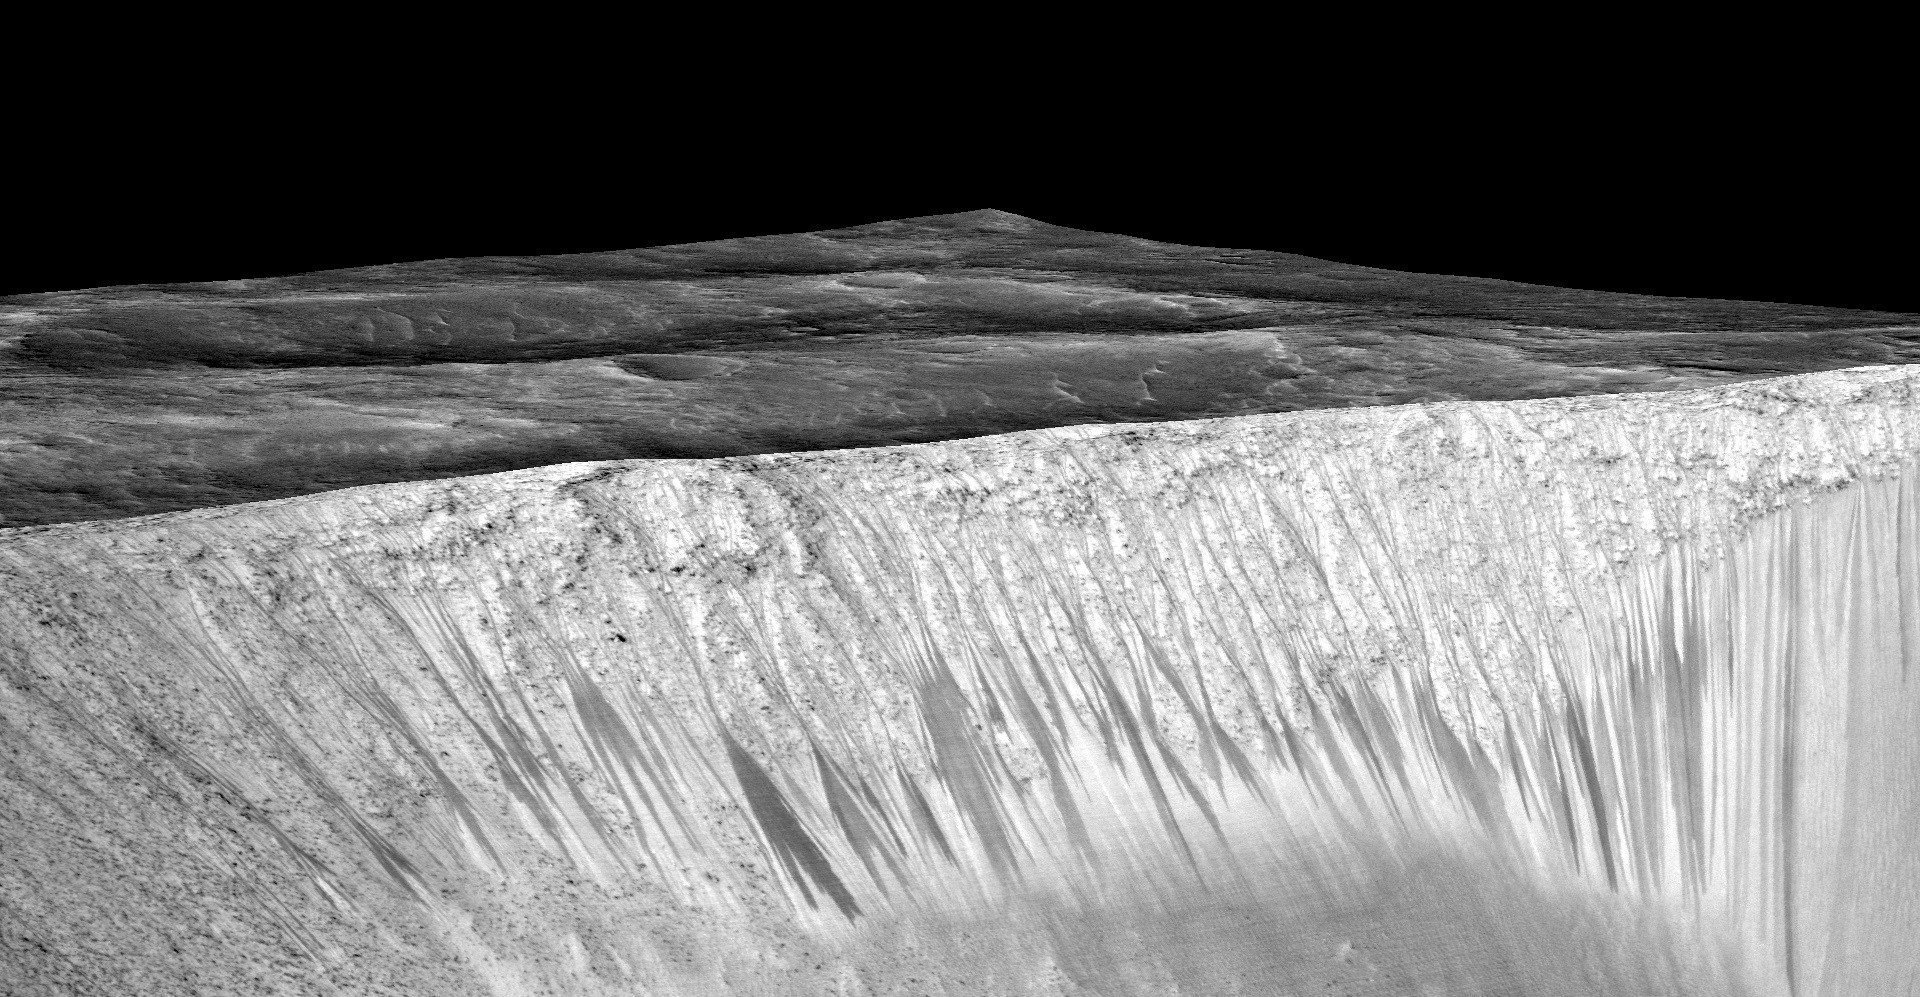 Discovery of water on Mars boosts possibility of life on the planet